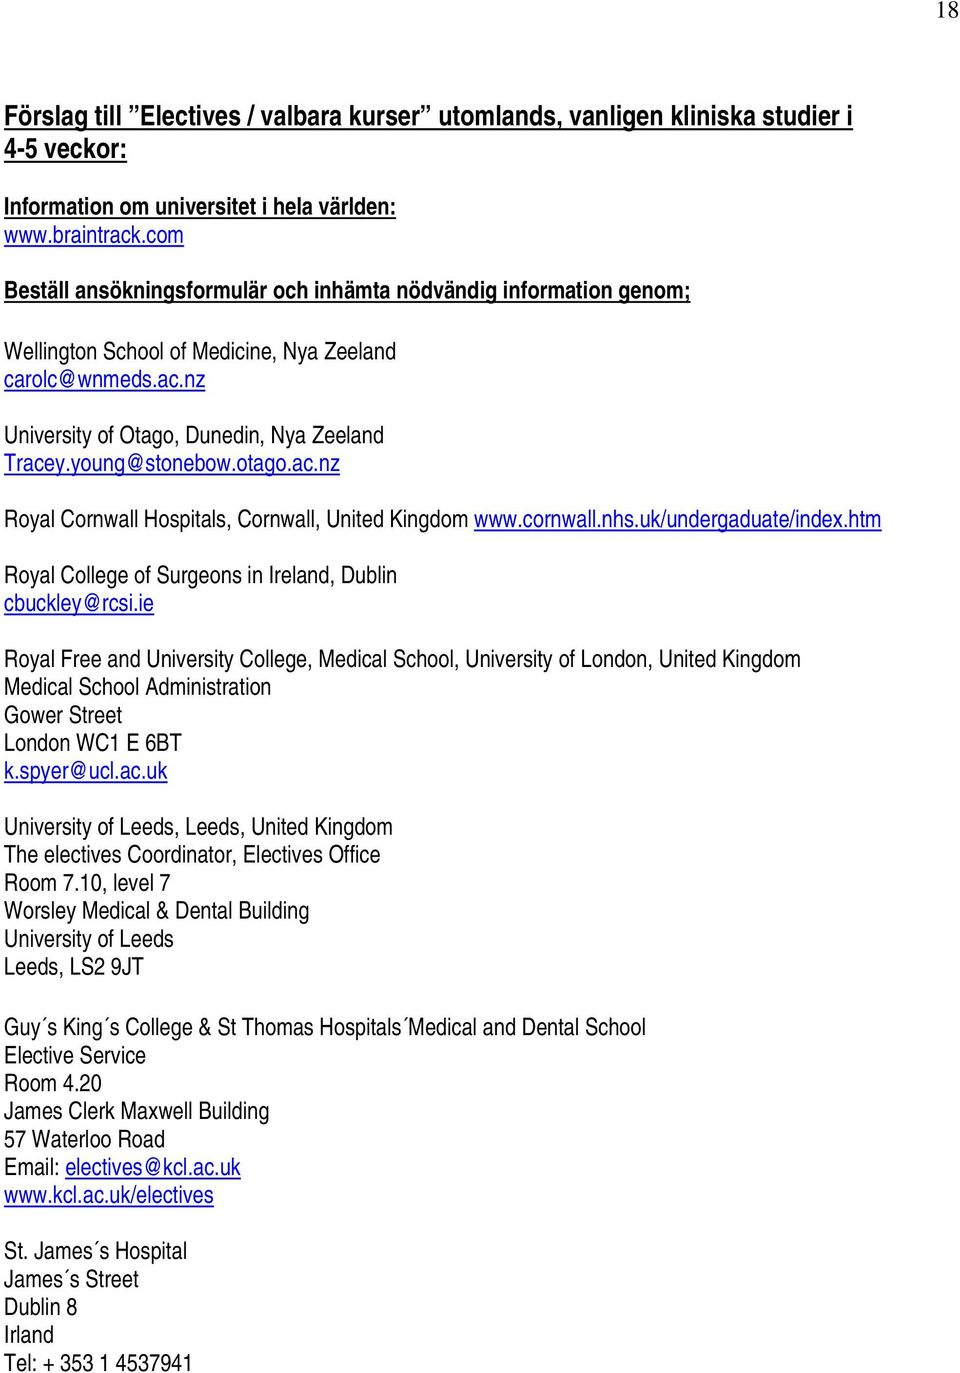 otago.ac.nz Royal Cornwall Hospitals, Cornwall, United Kingdom www.cornwall.nhs.uk/undergaduate/index.htm Royal College of Surgeons in Ireland, Dublin cbuckley@rcsi.